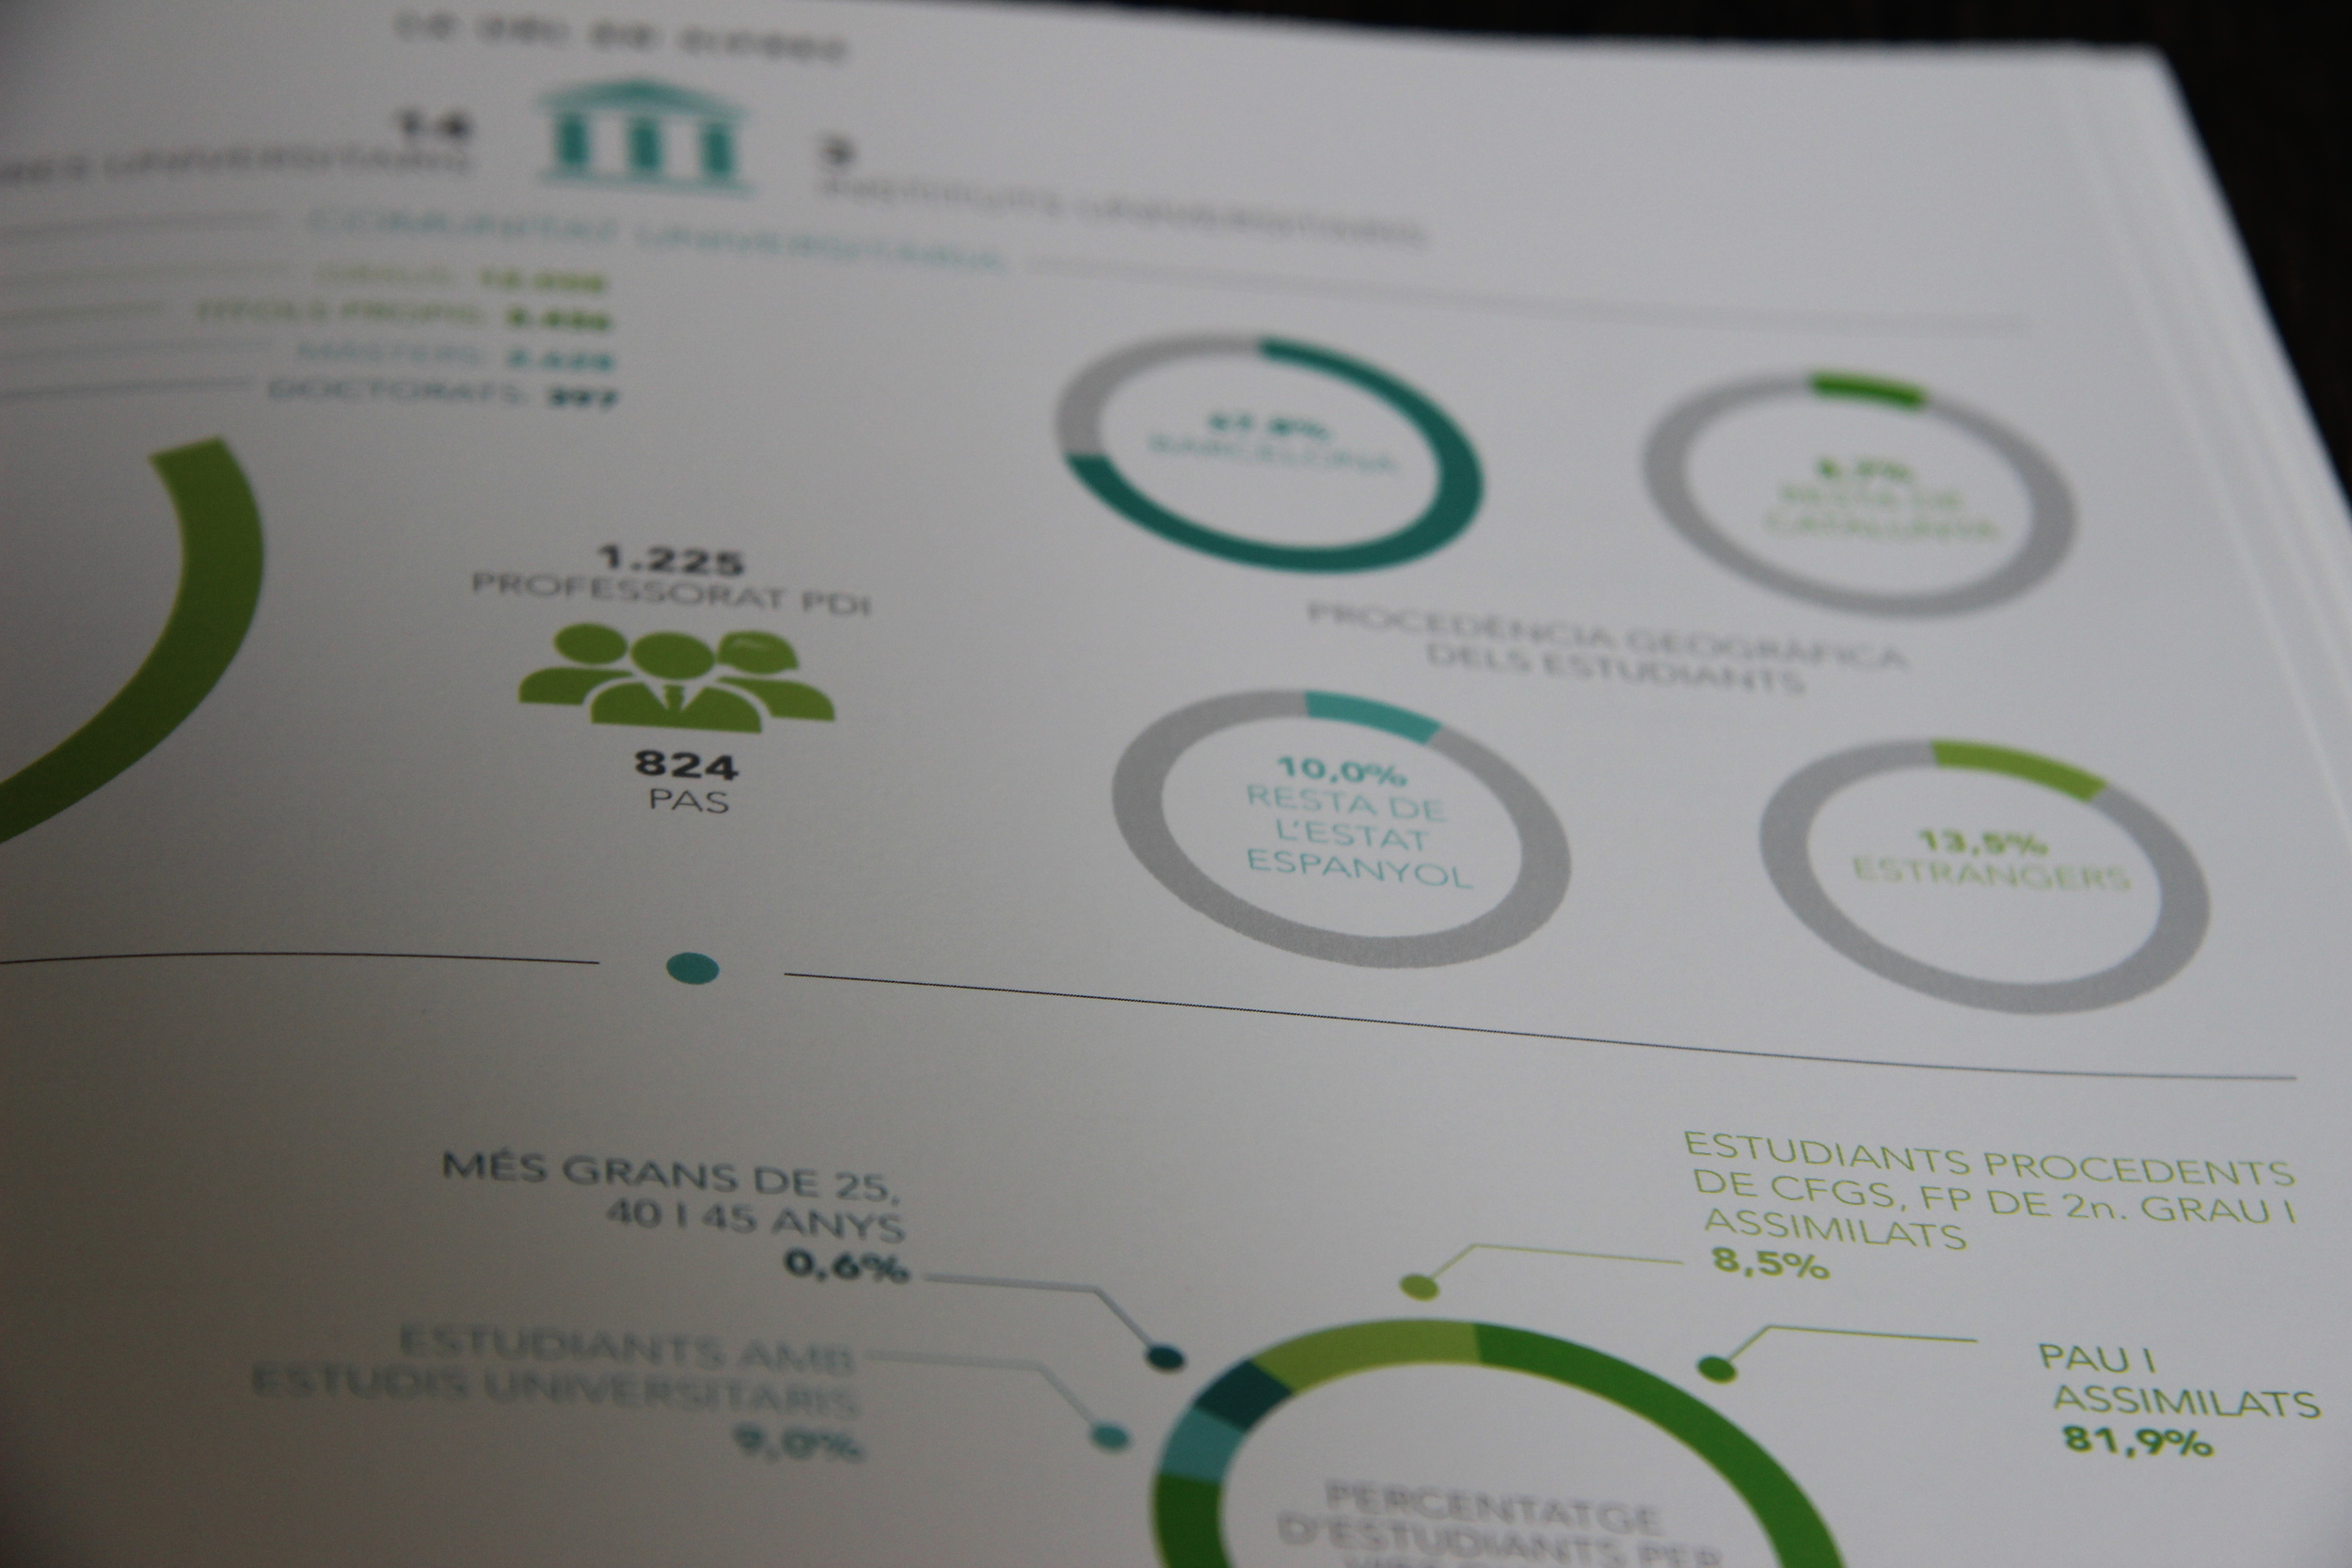 Design of information graphics in Ramon Llull University's annual report and study guide